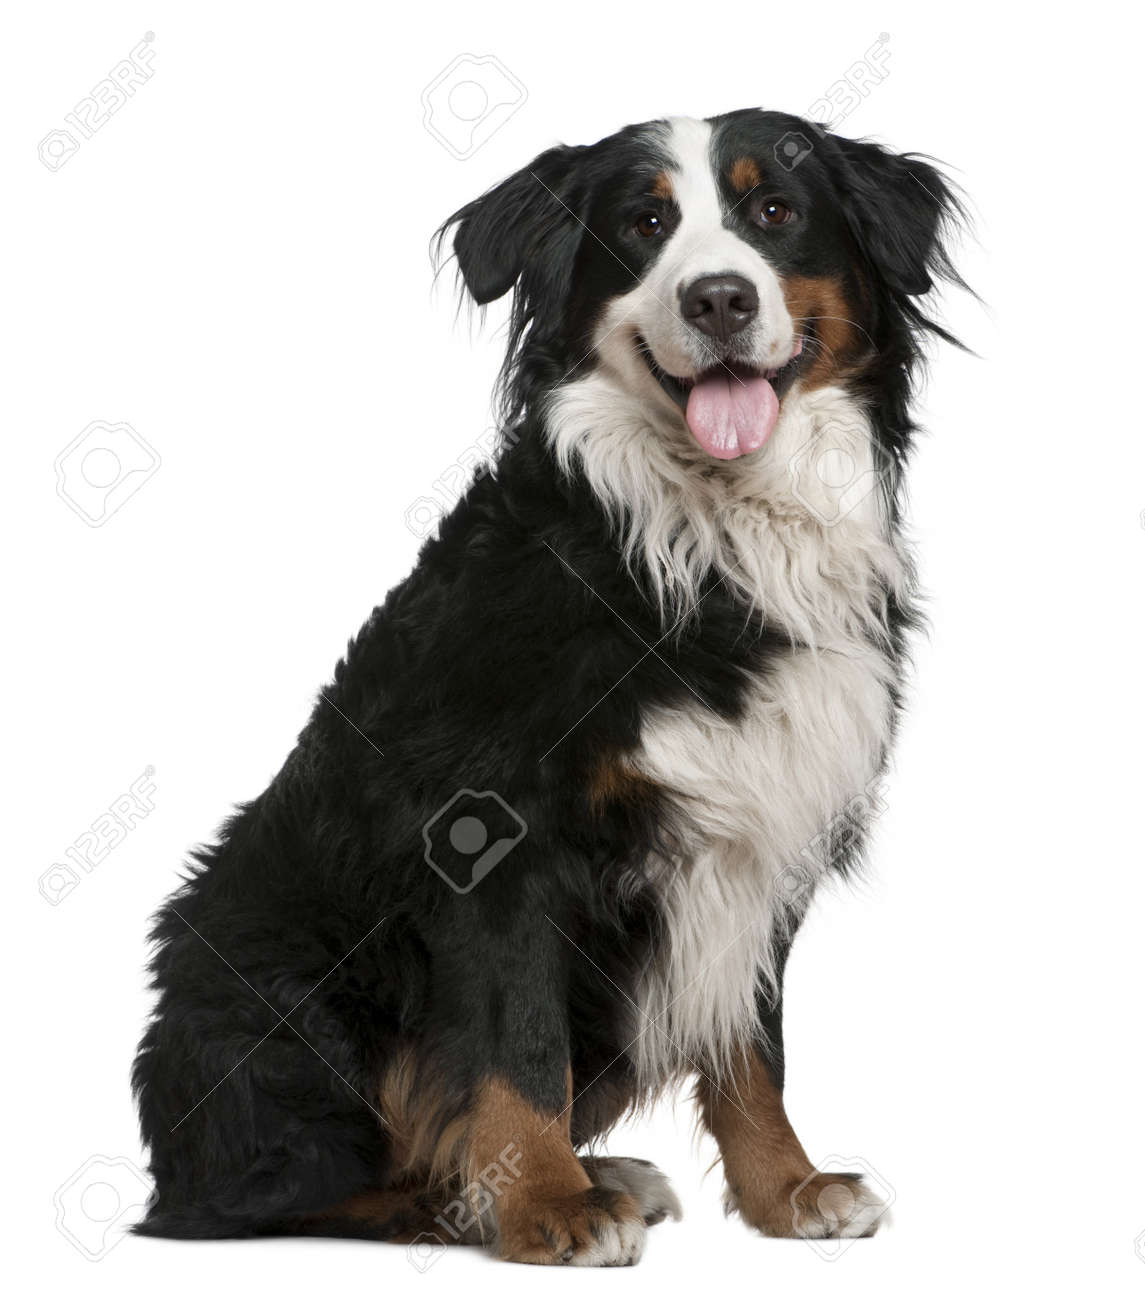 Bernese mountain dog, 3 years old, sitting in front of white background Stock Photo - 7121558